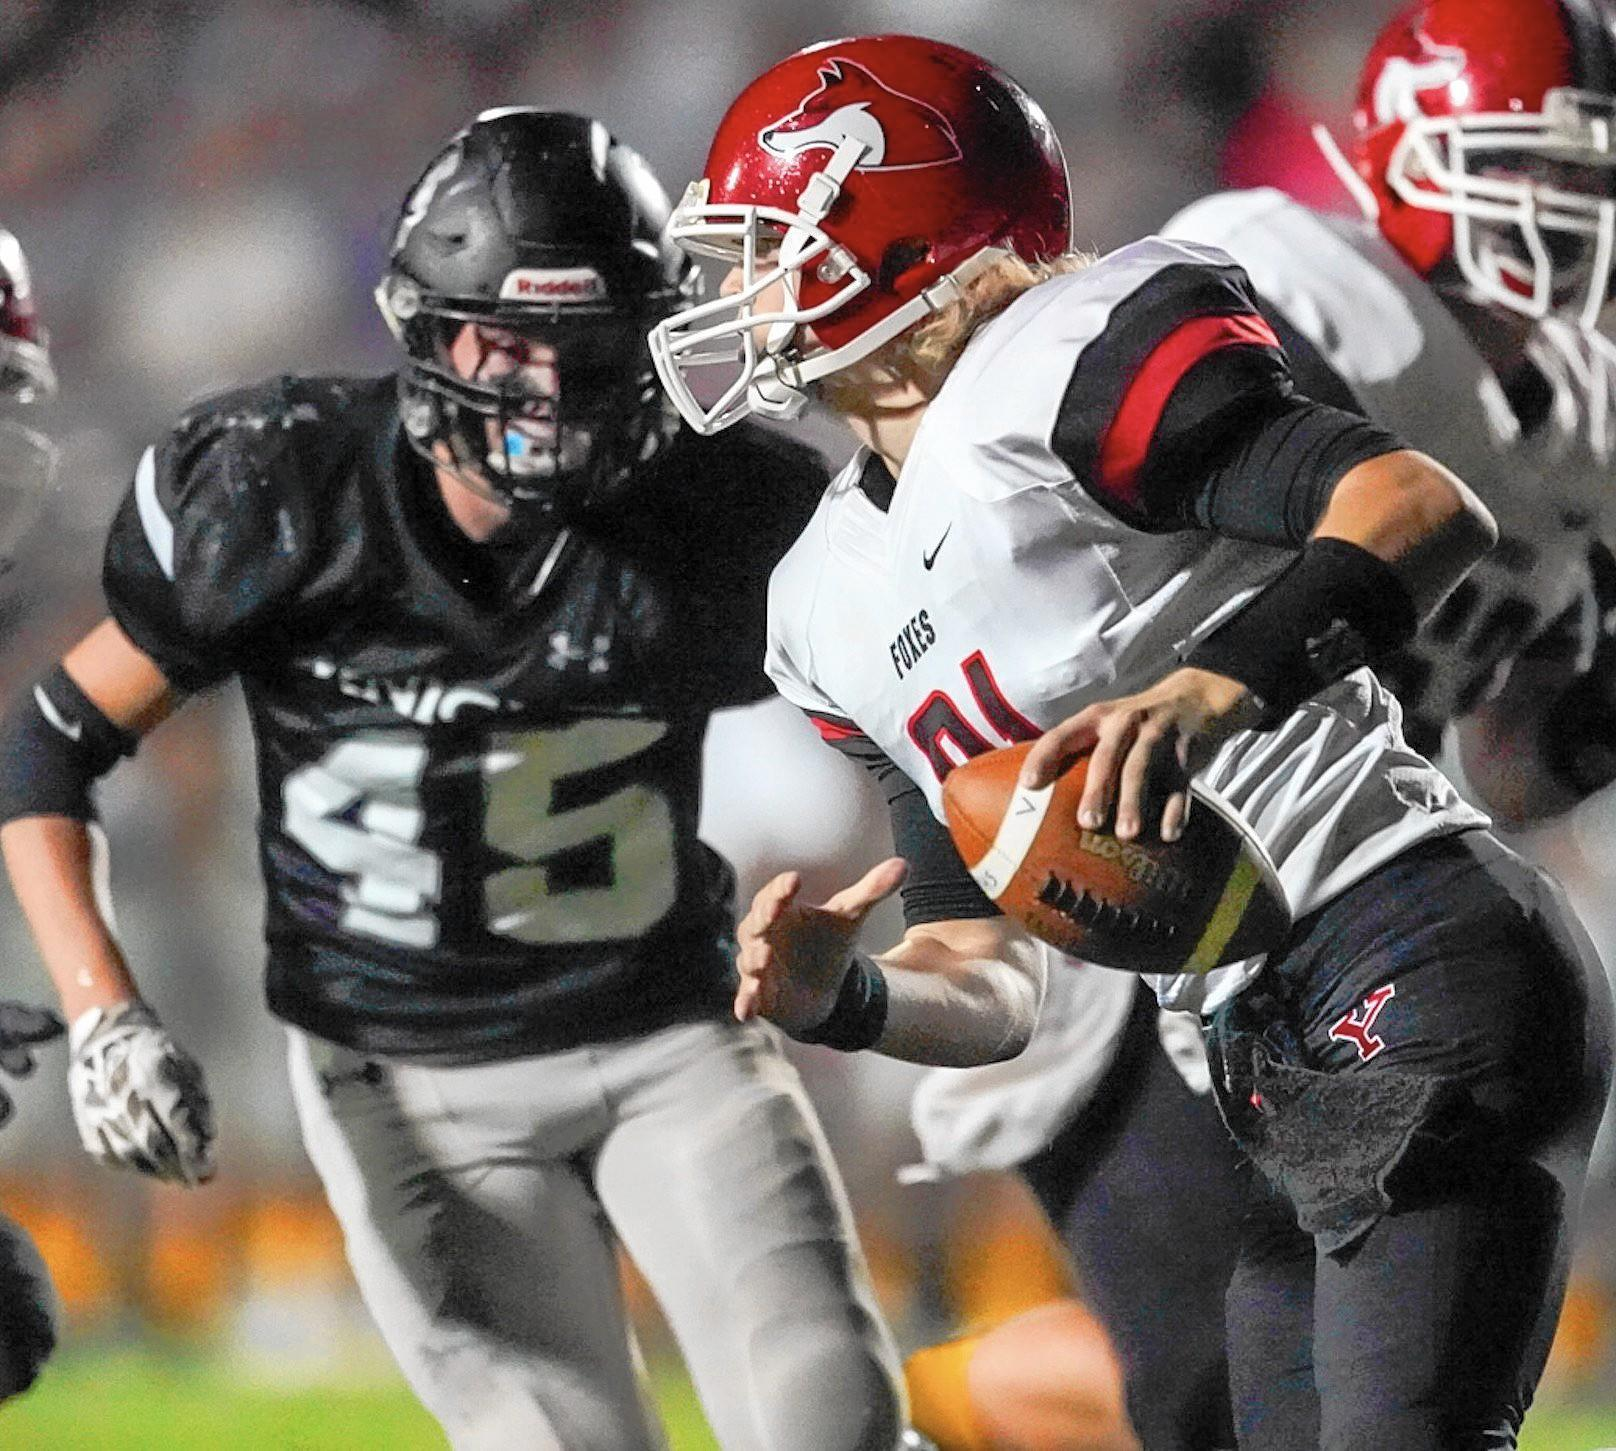 Kaneland And Yorkville In Conference Limbo After Sycamore